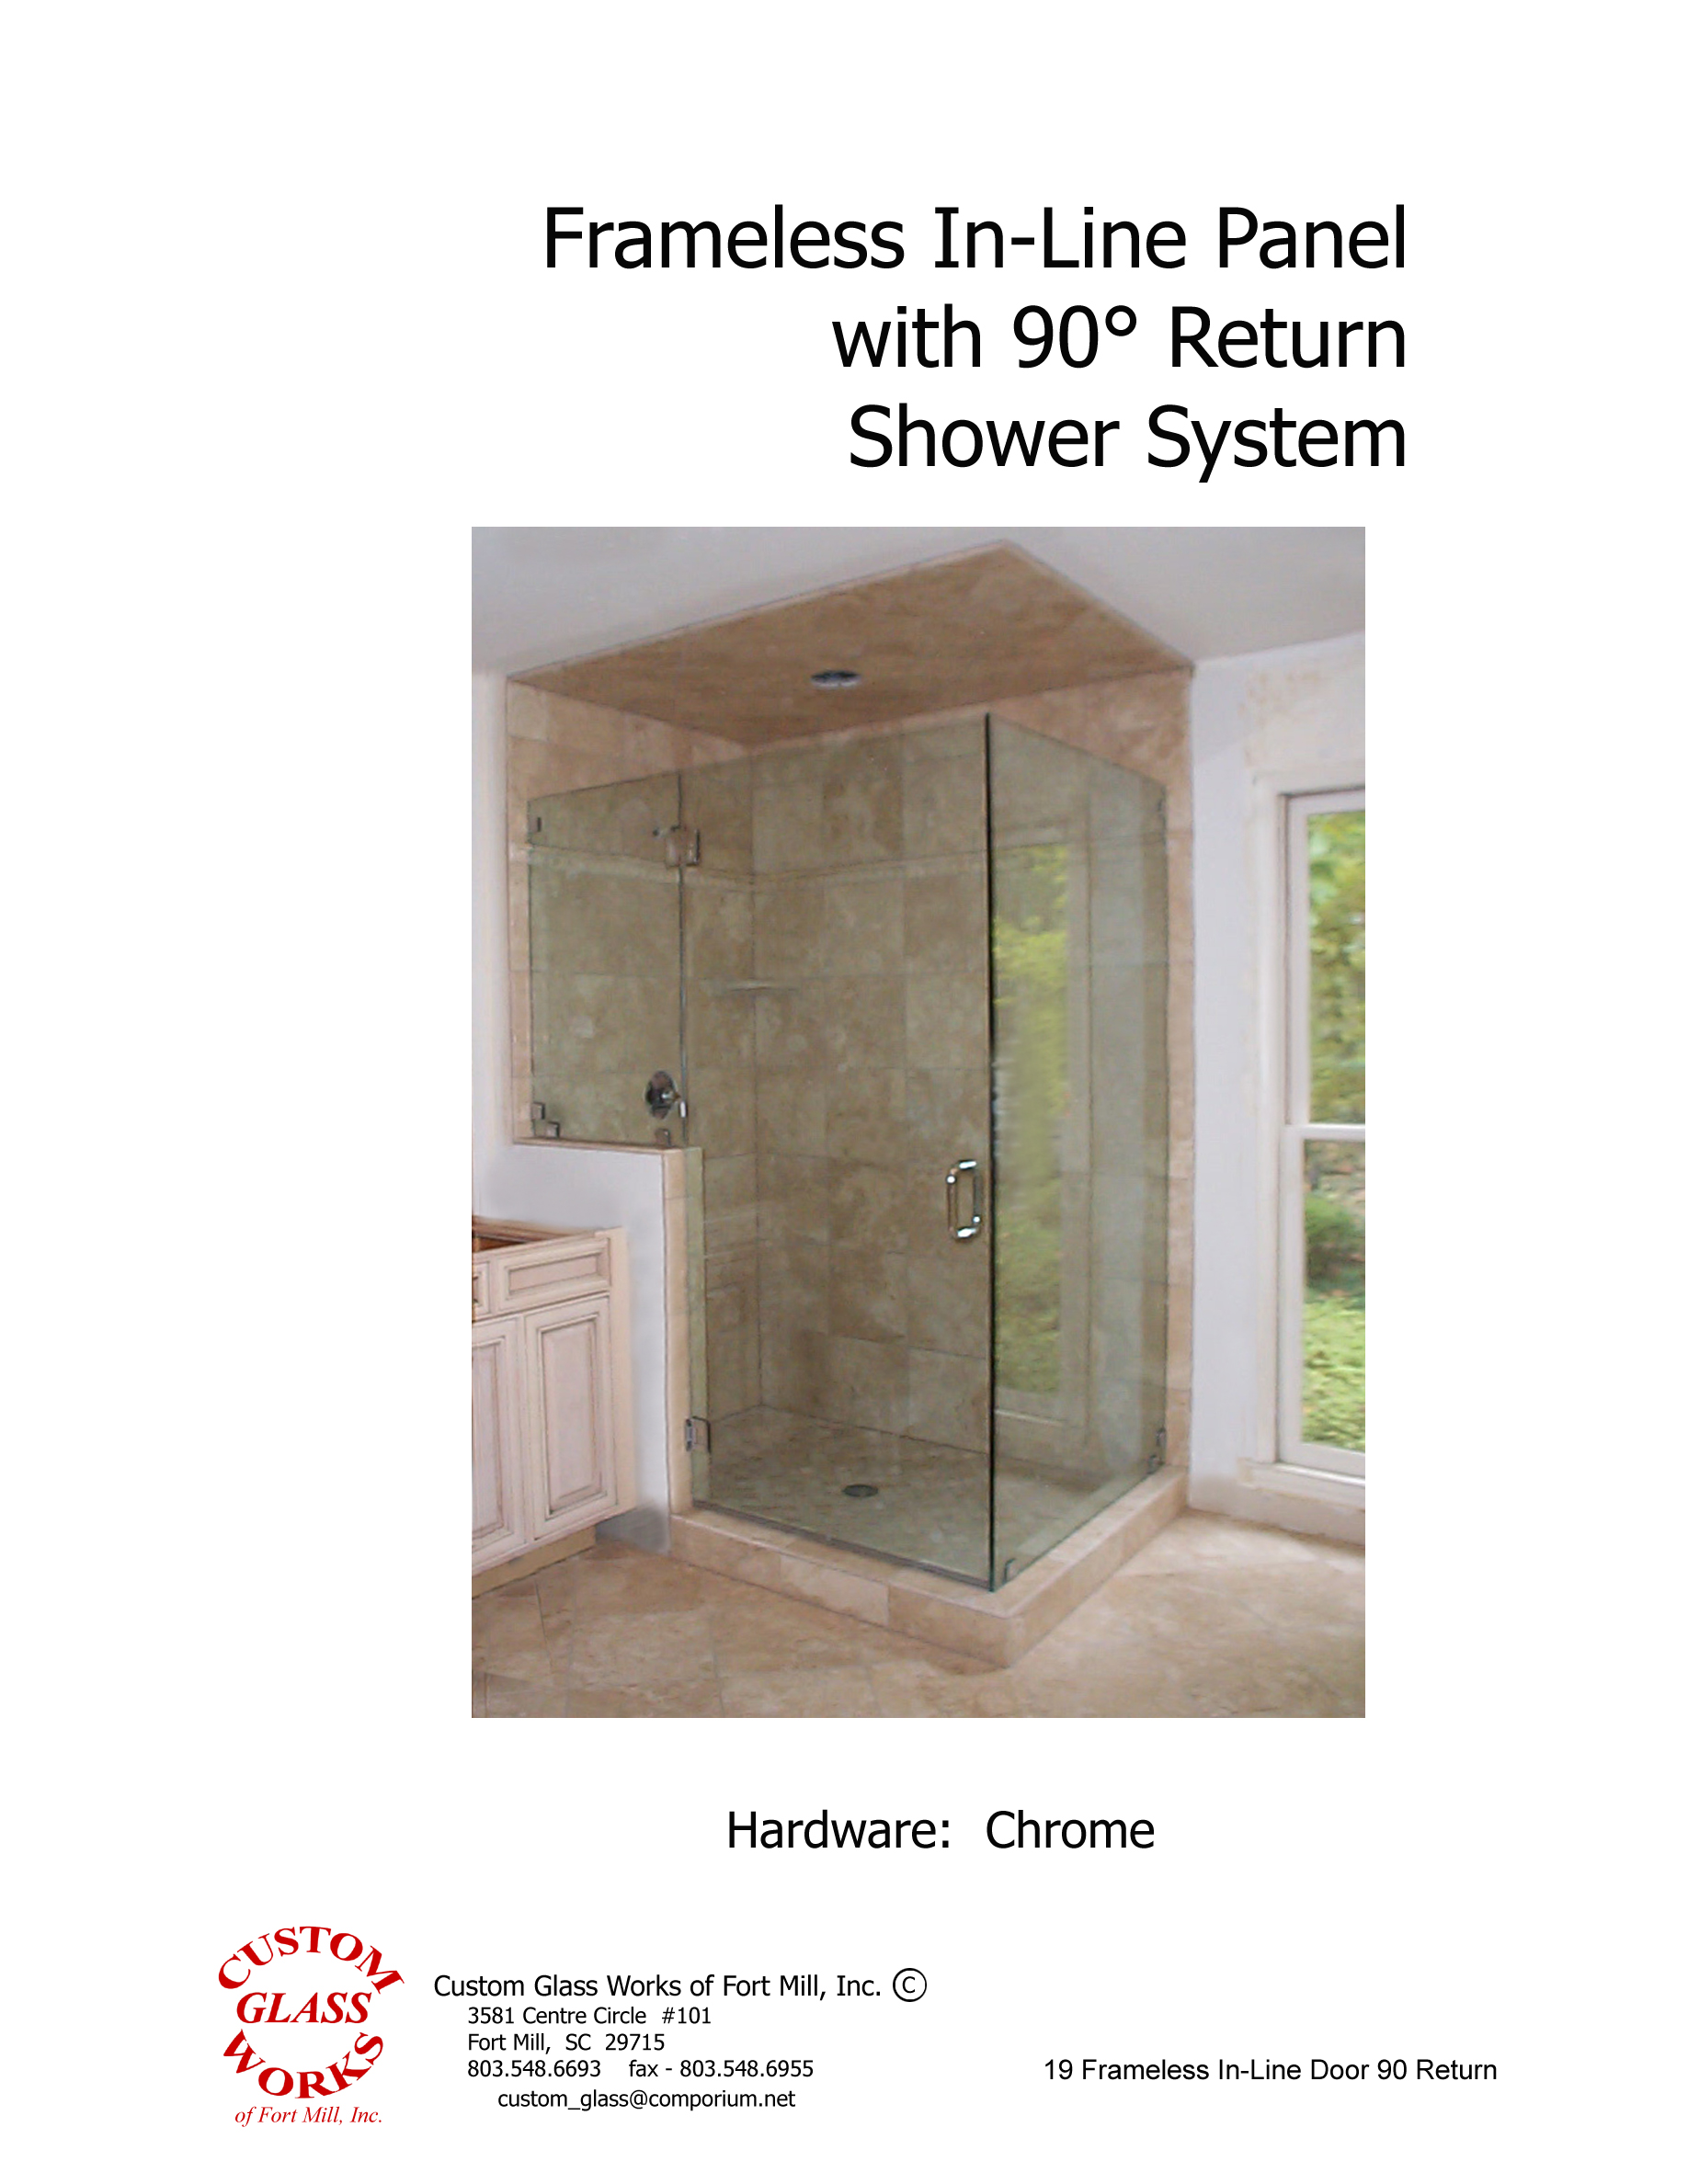 19 Frameless In-Line Door 90 Return